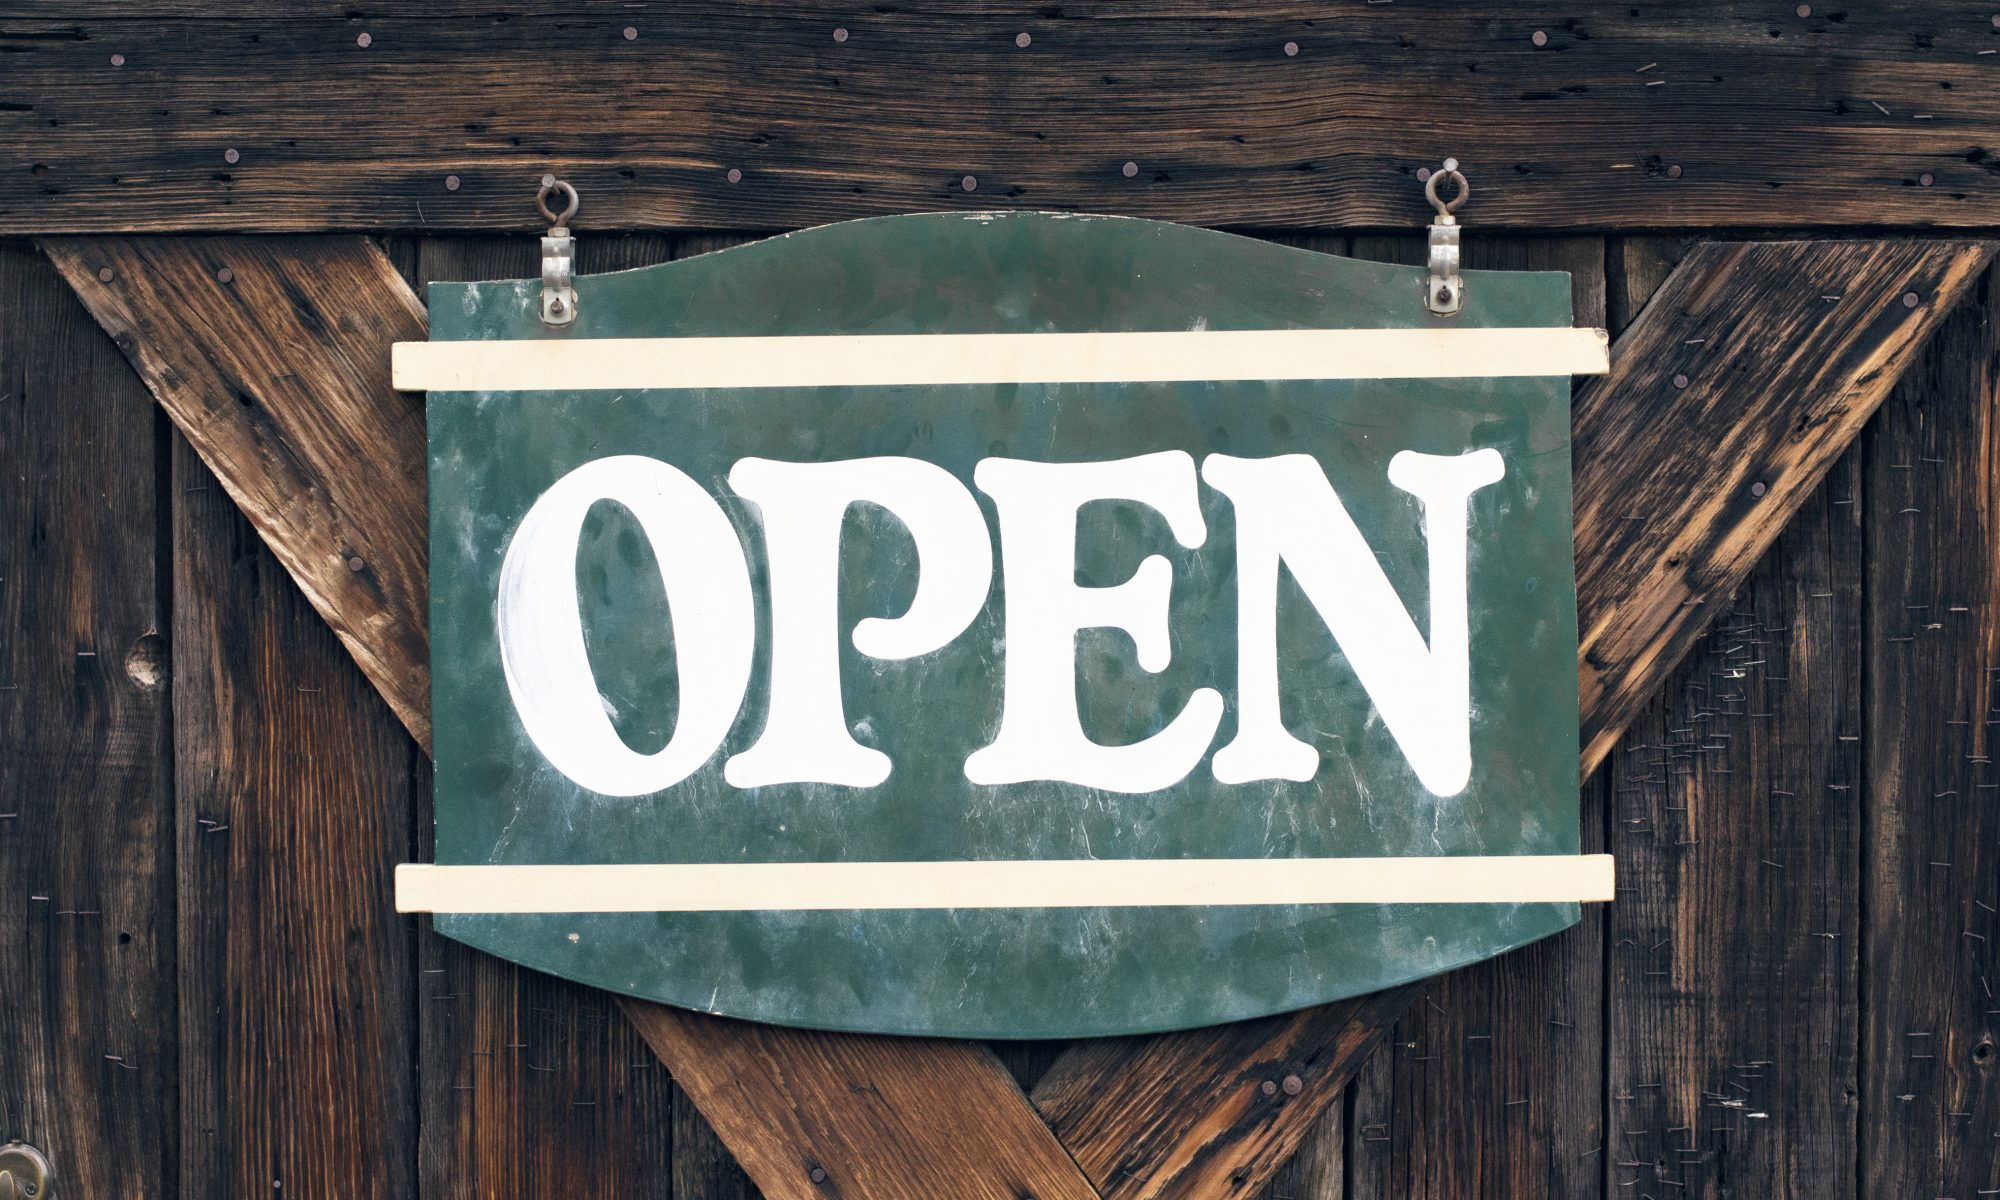 Two Roads is open for business